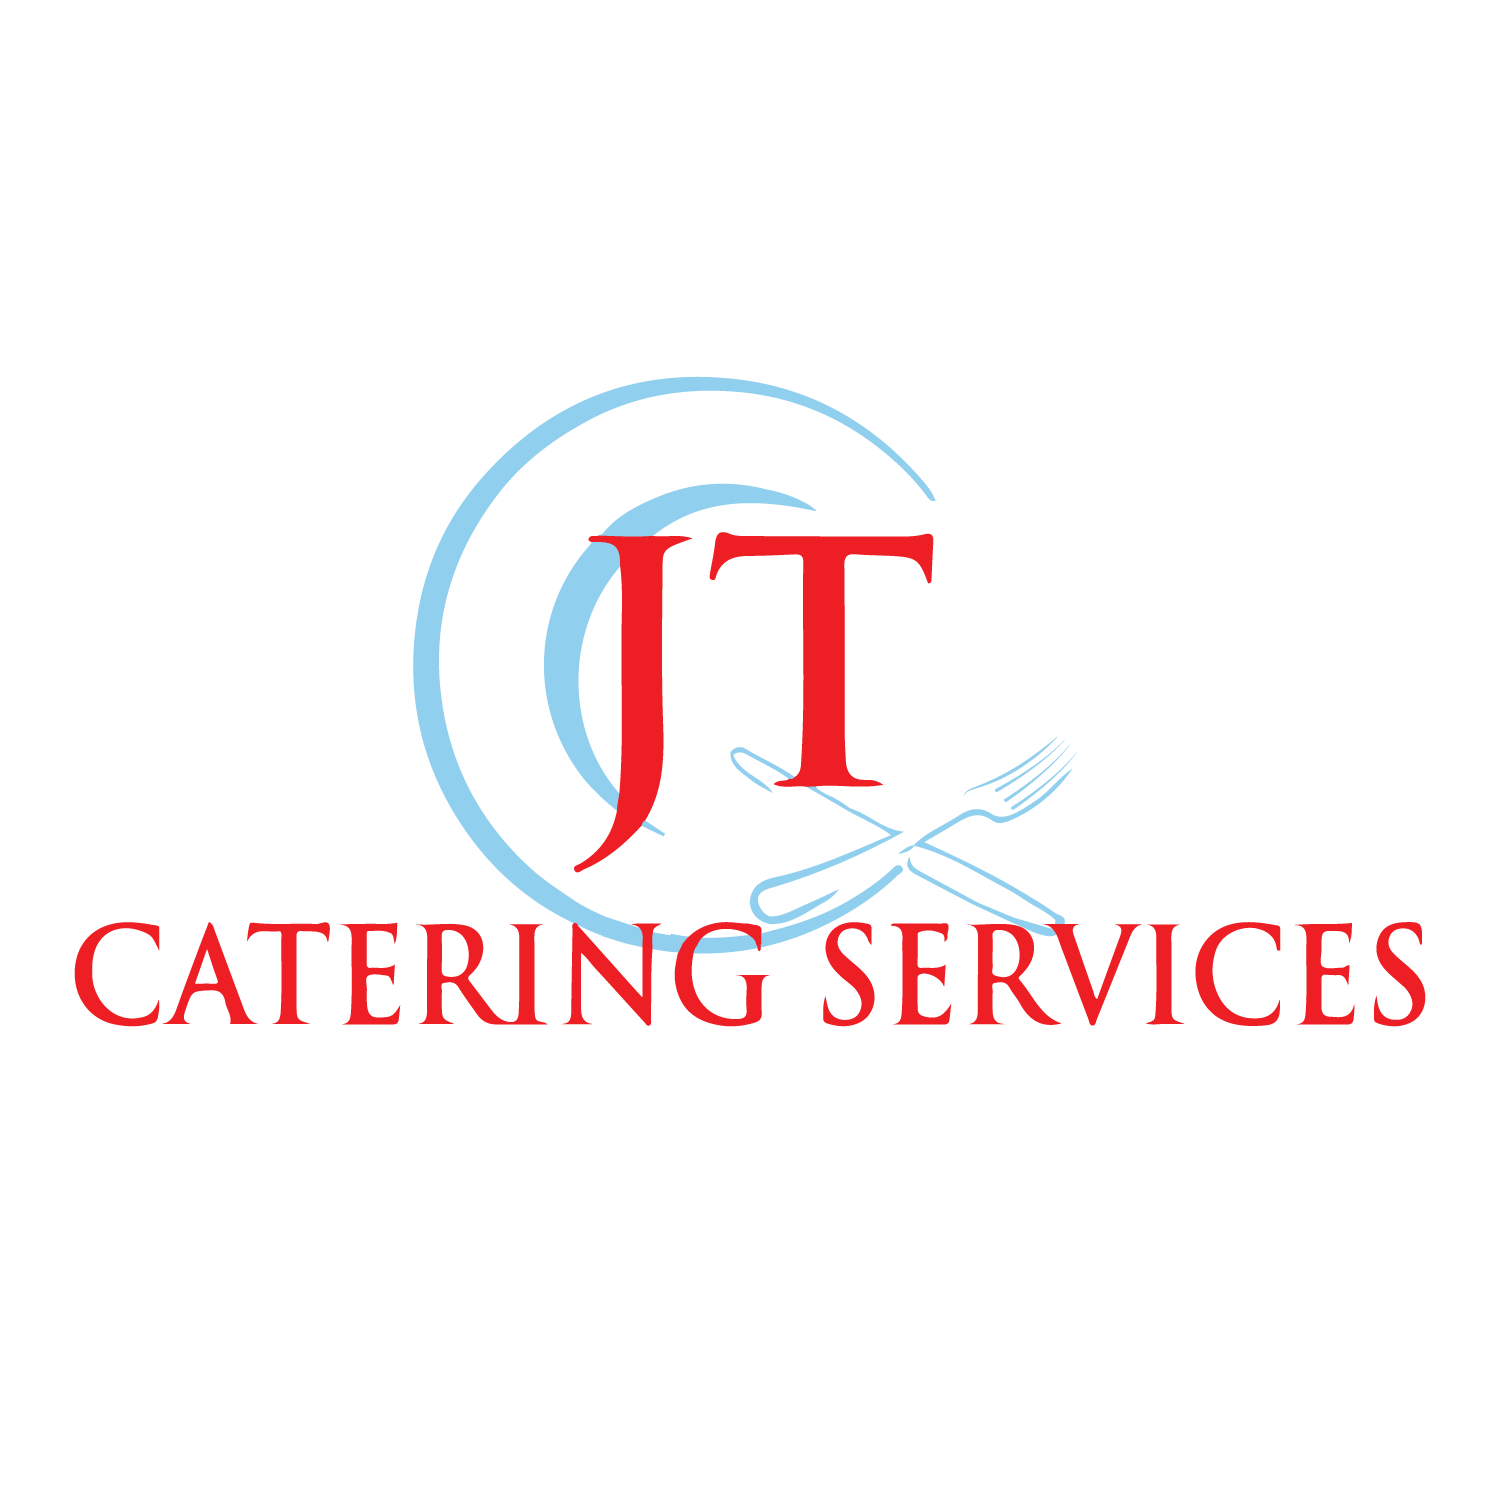 JT Catering Services